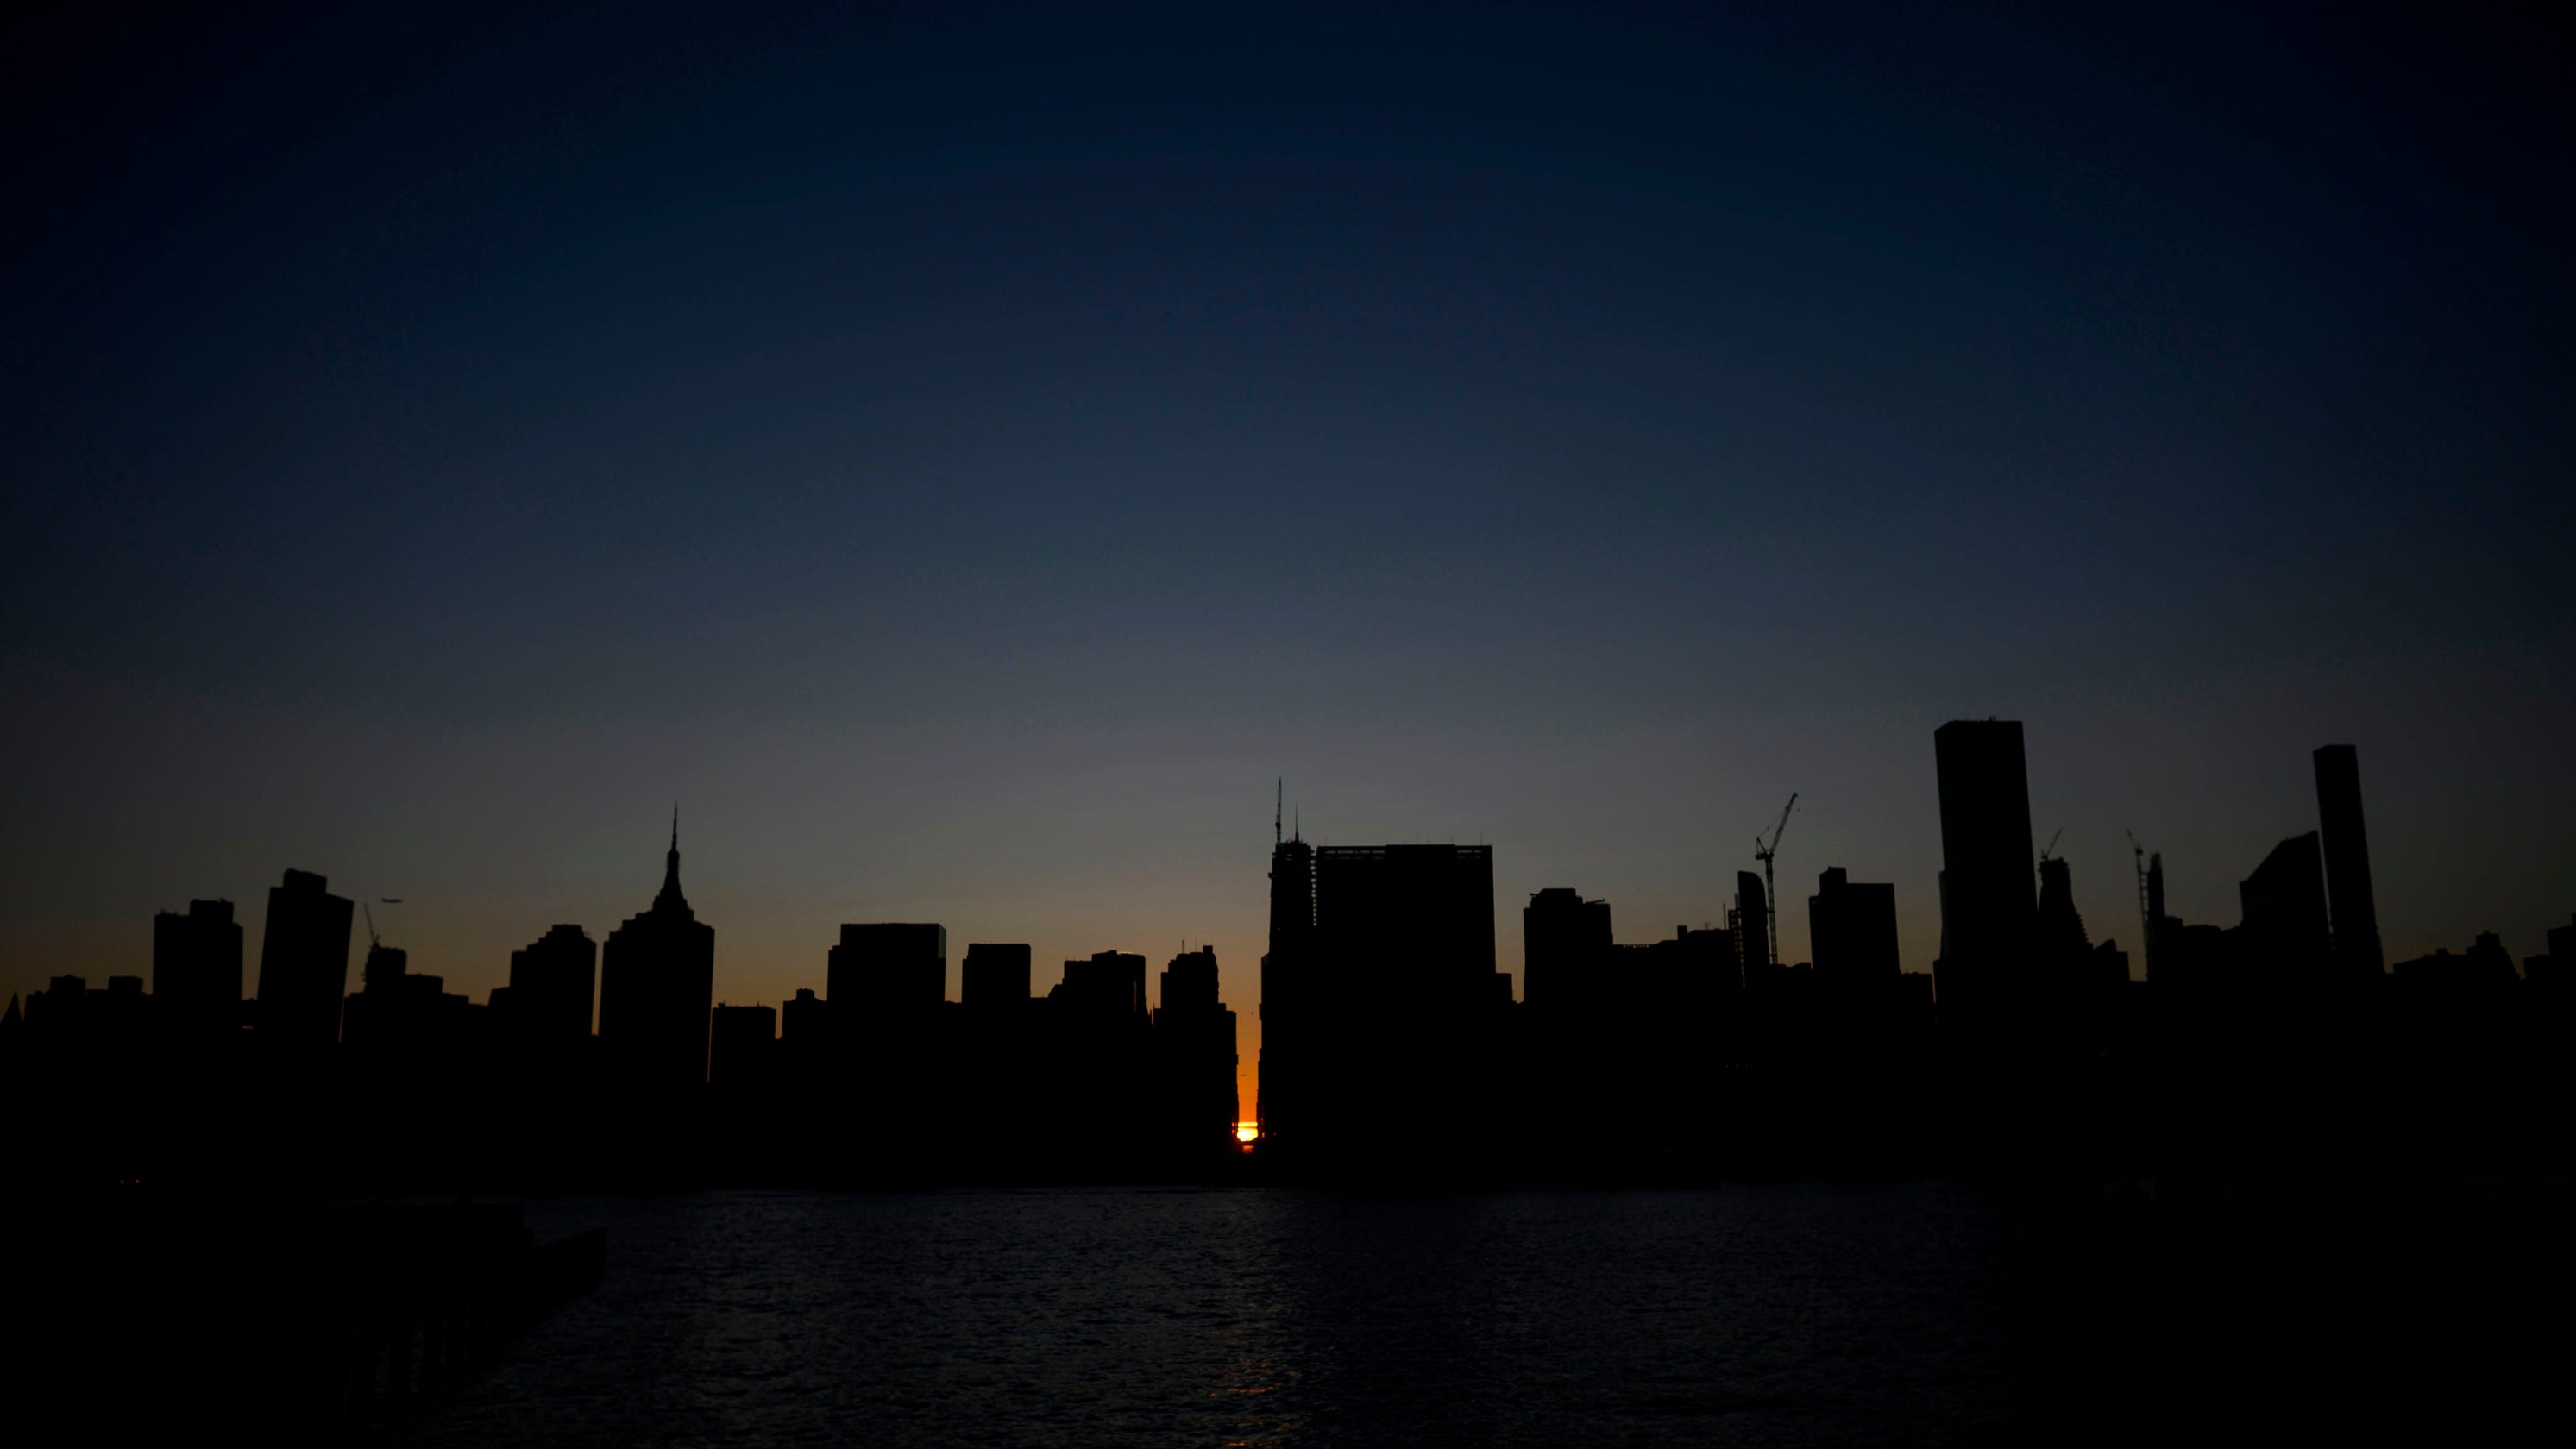 Triple-digit temperatures could bring blackouts in New York City, DC and Chicago